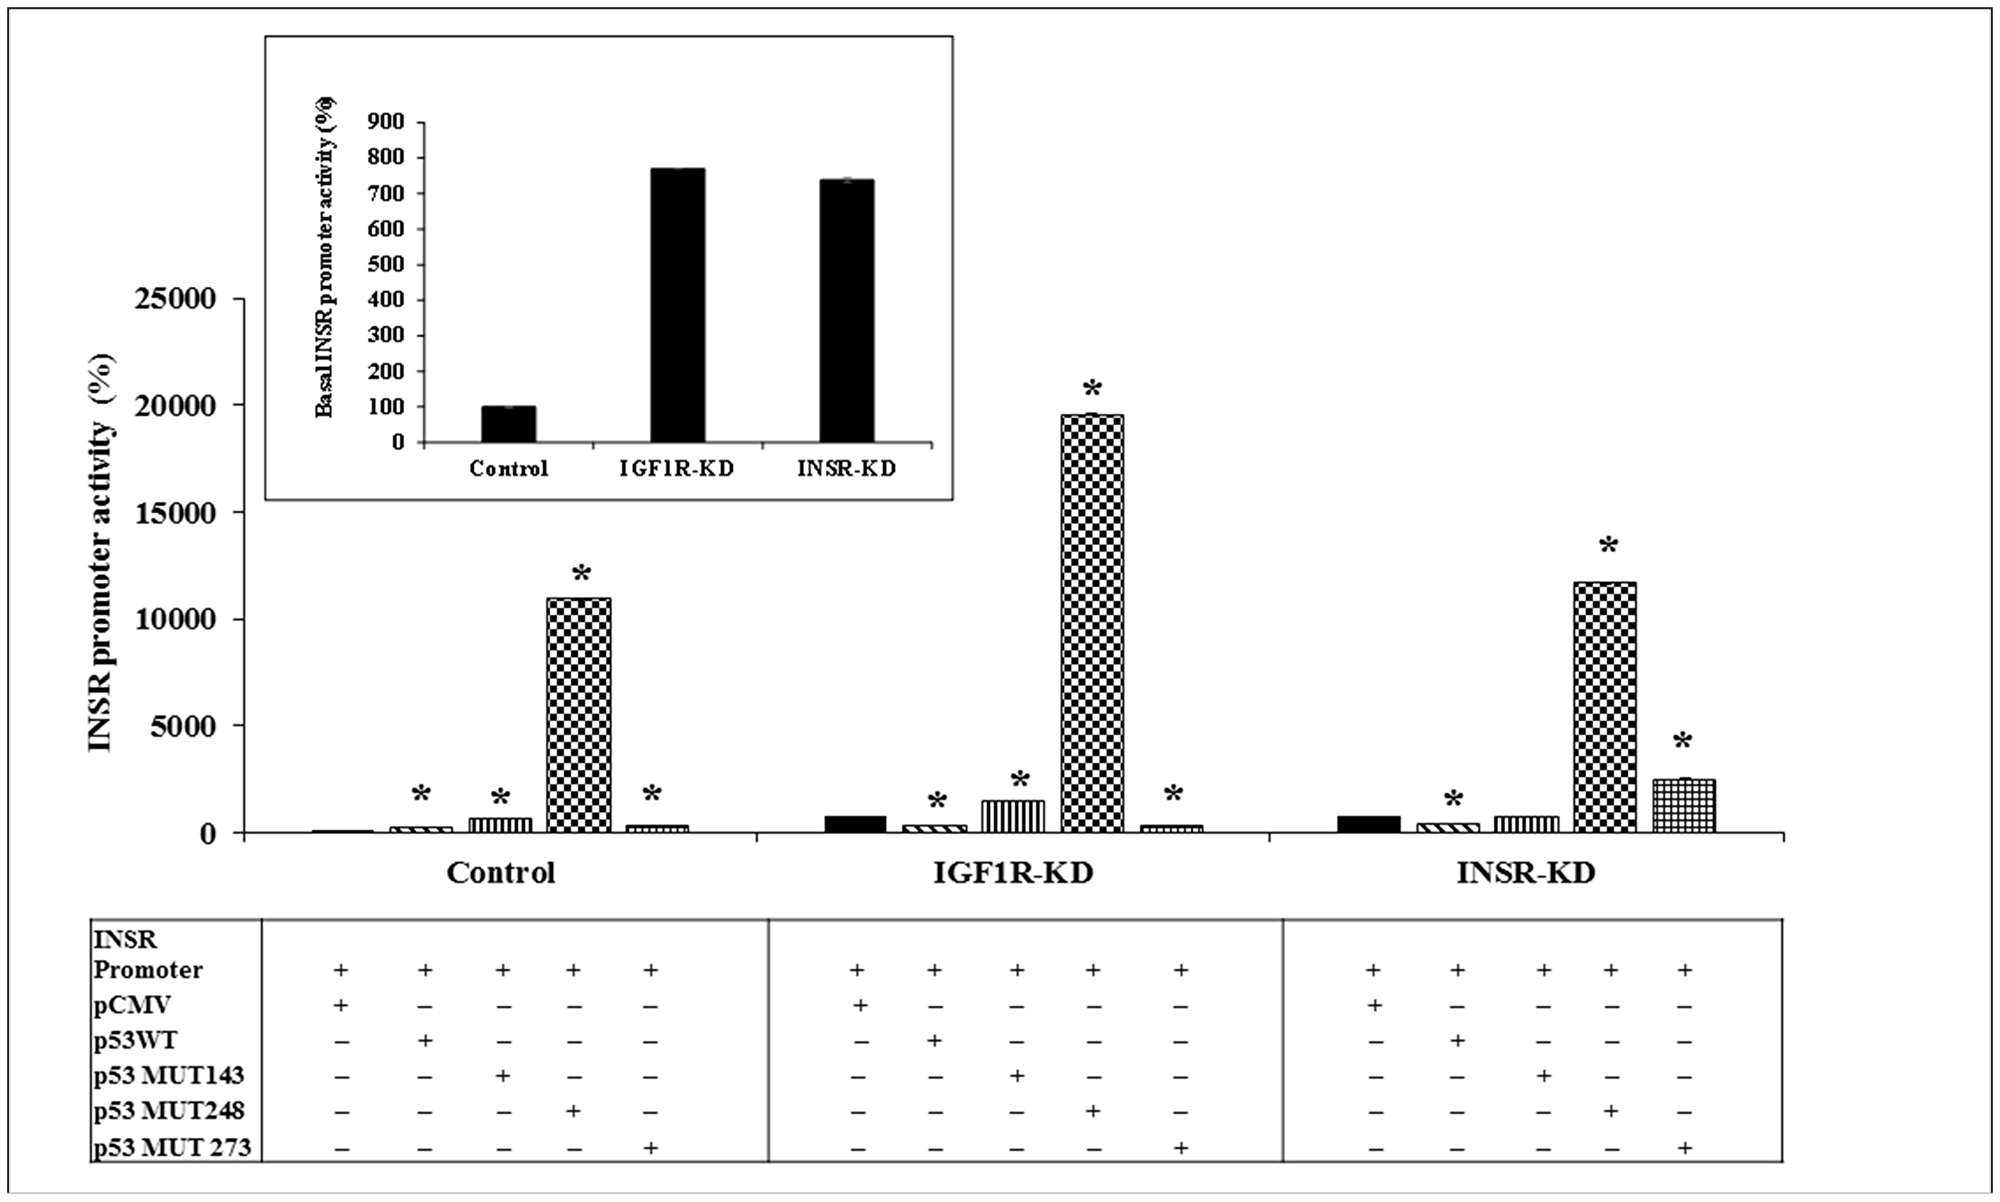 Effect of wild-type or mutant p53 on INSR promoter activity.